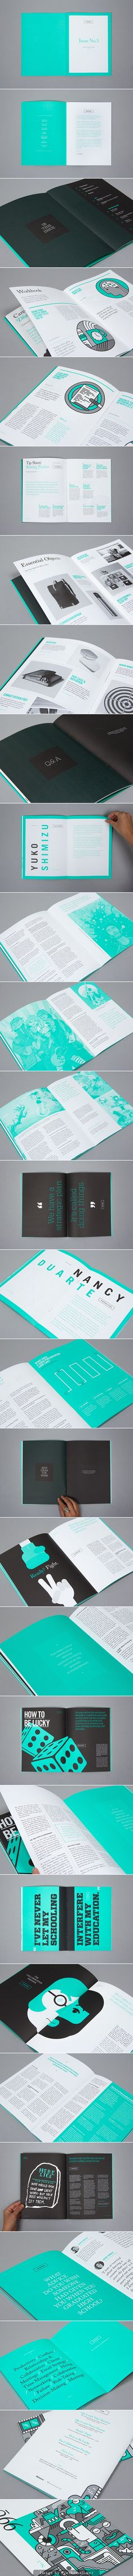 ///// 99U Quarterly Magazine Issue No3 #print #design #editorial #layout #magazine #cover